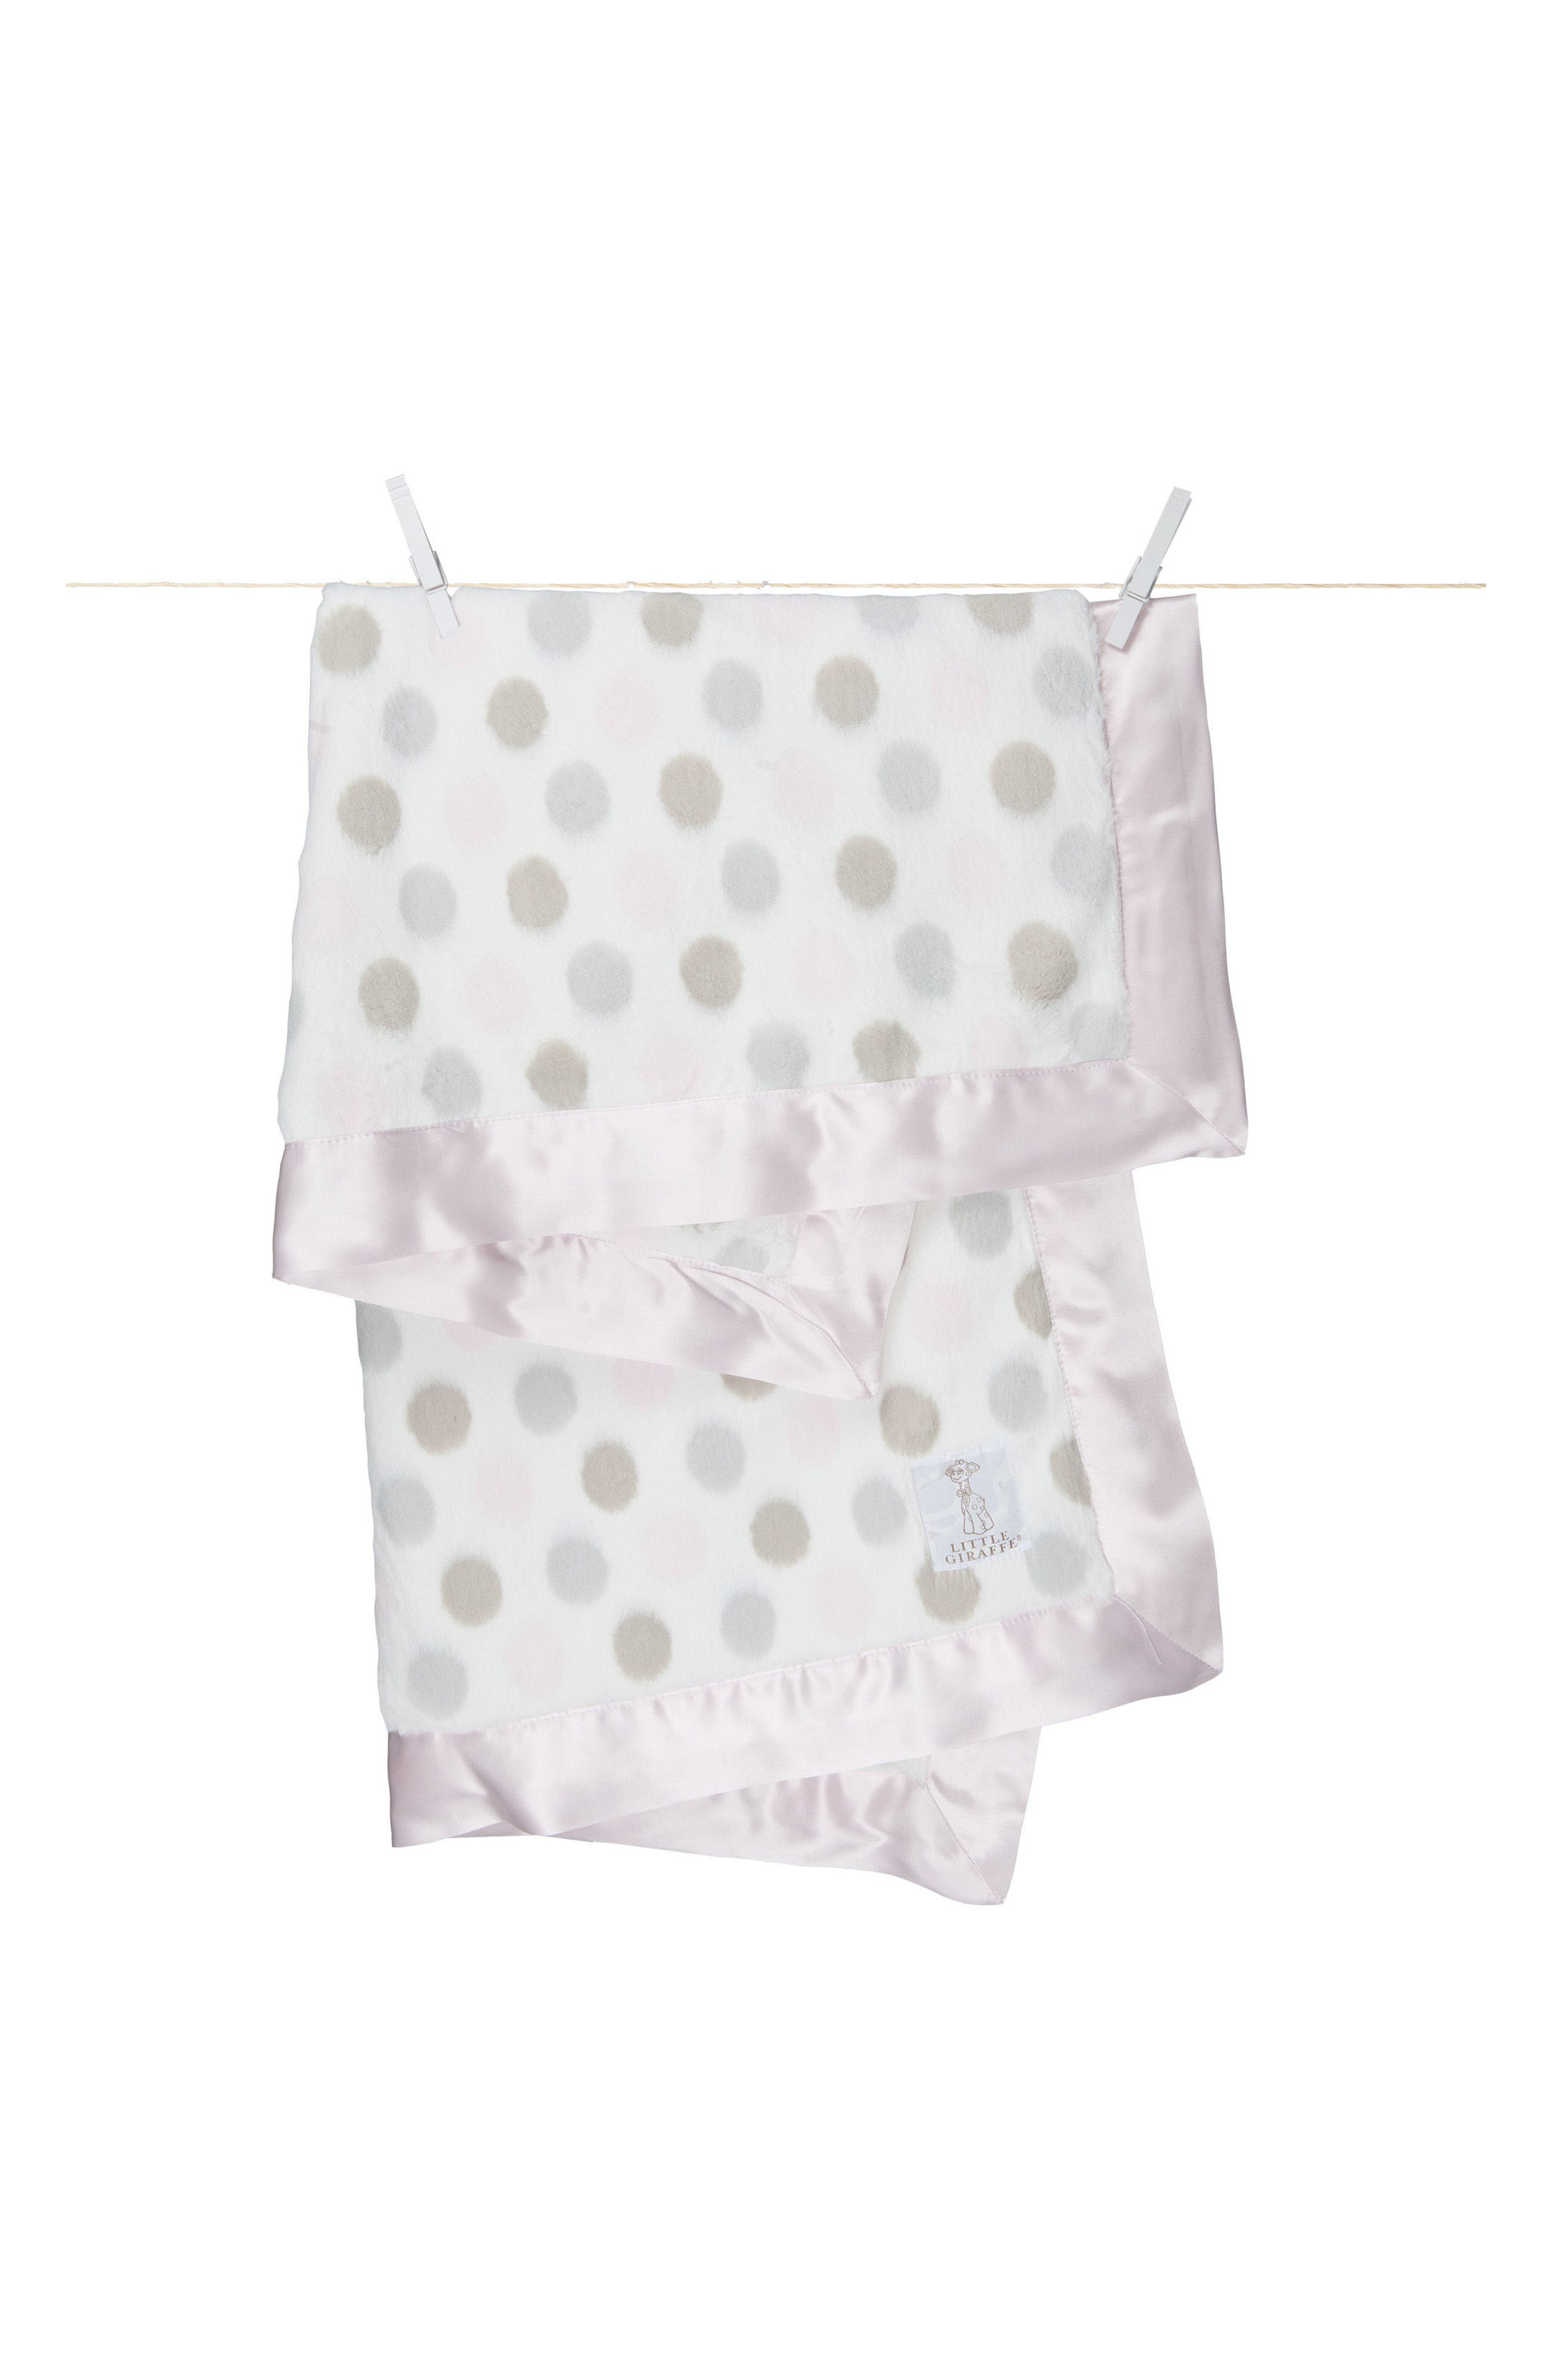 'Luxe Dot' Blanket,                             Main thumbnail 1, color,                             Pink